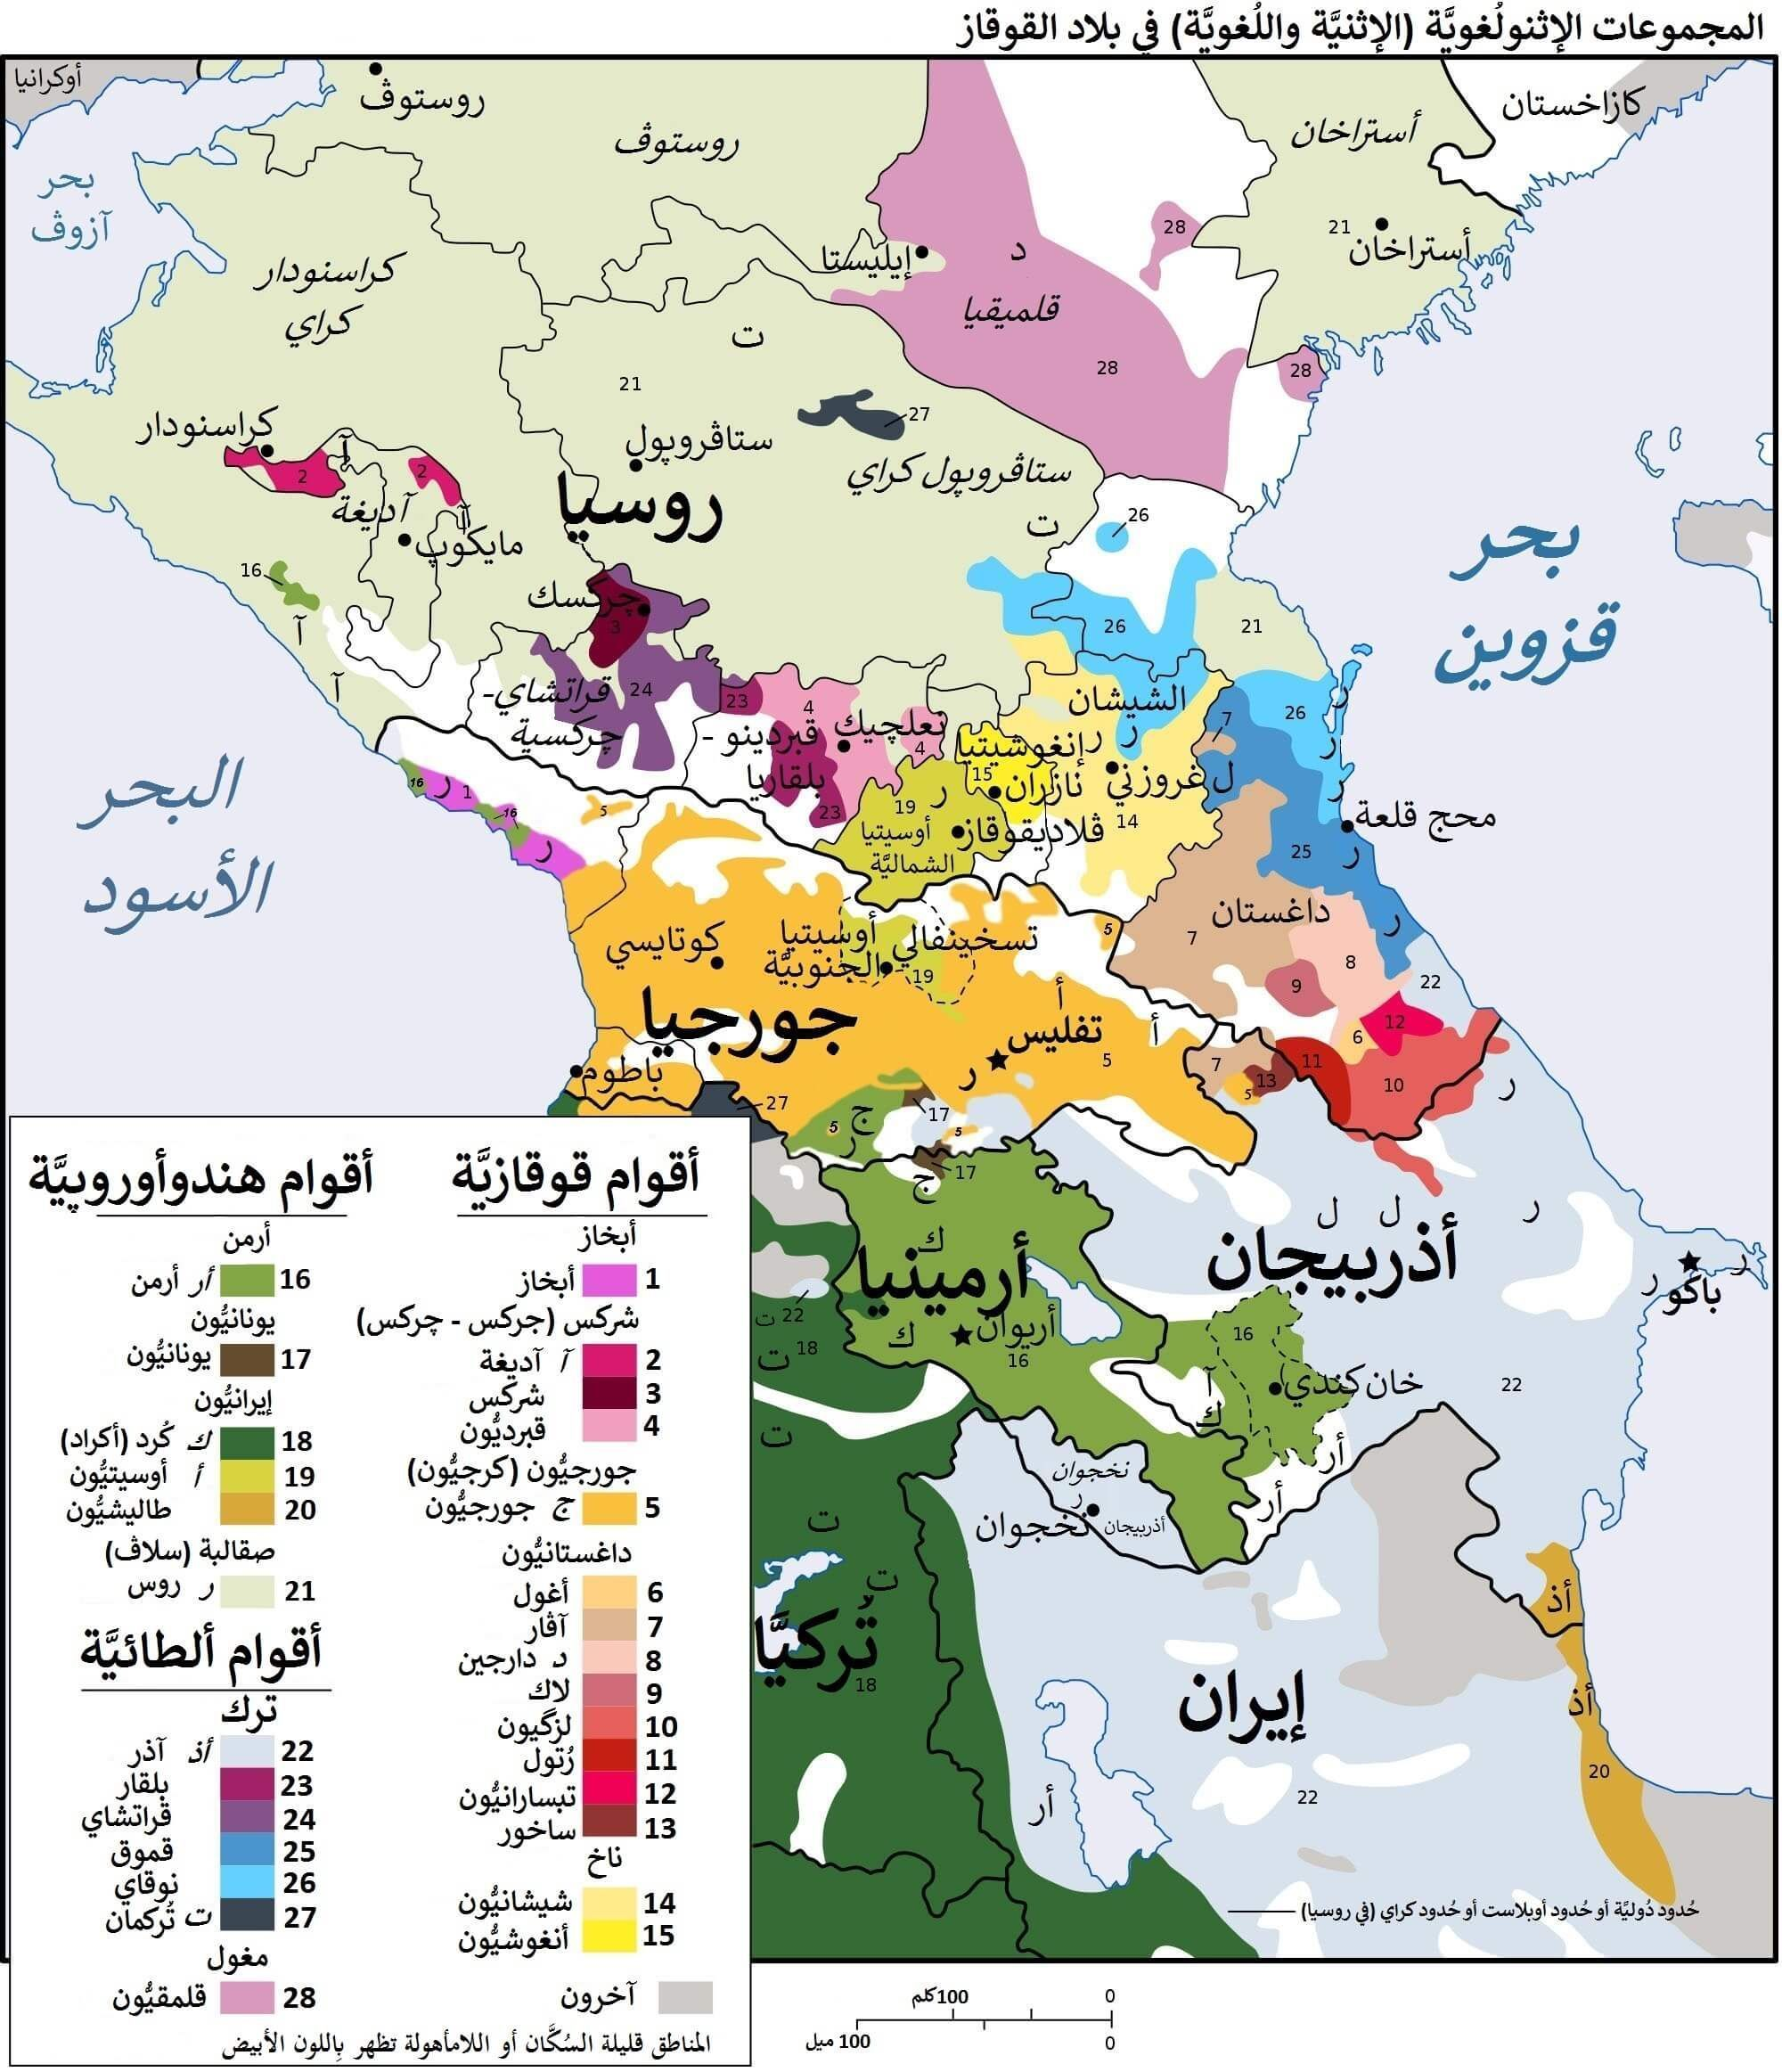 ethnic_groups_in_caucasus_region_2009-ar